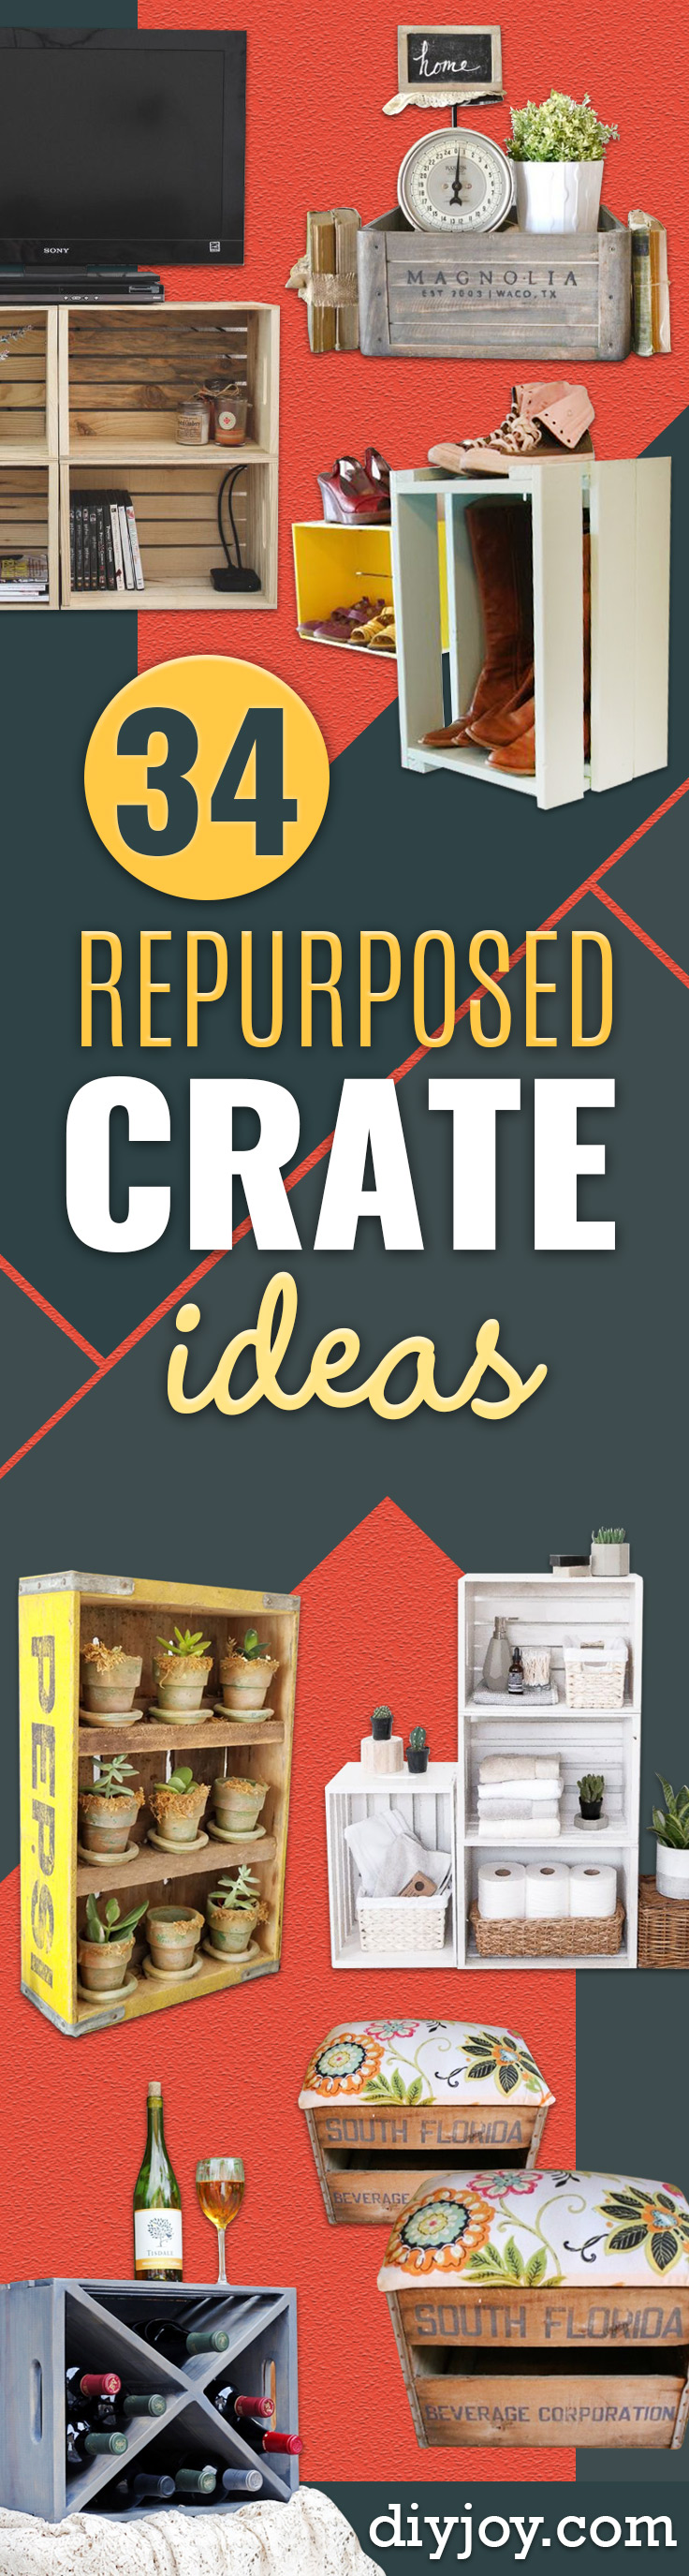 Things to Make With Crates - DIY Furniture Ideas - Cheap Home Decor Projects